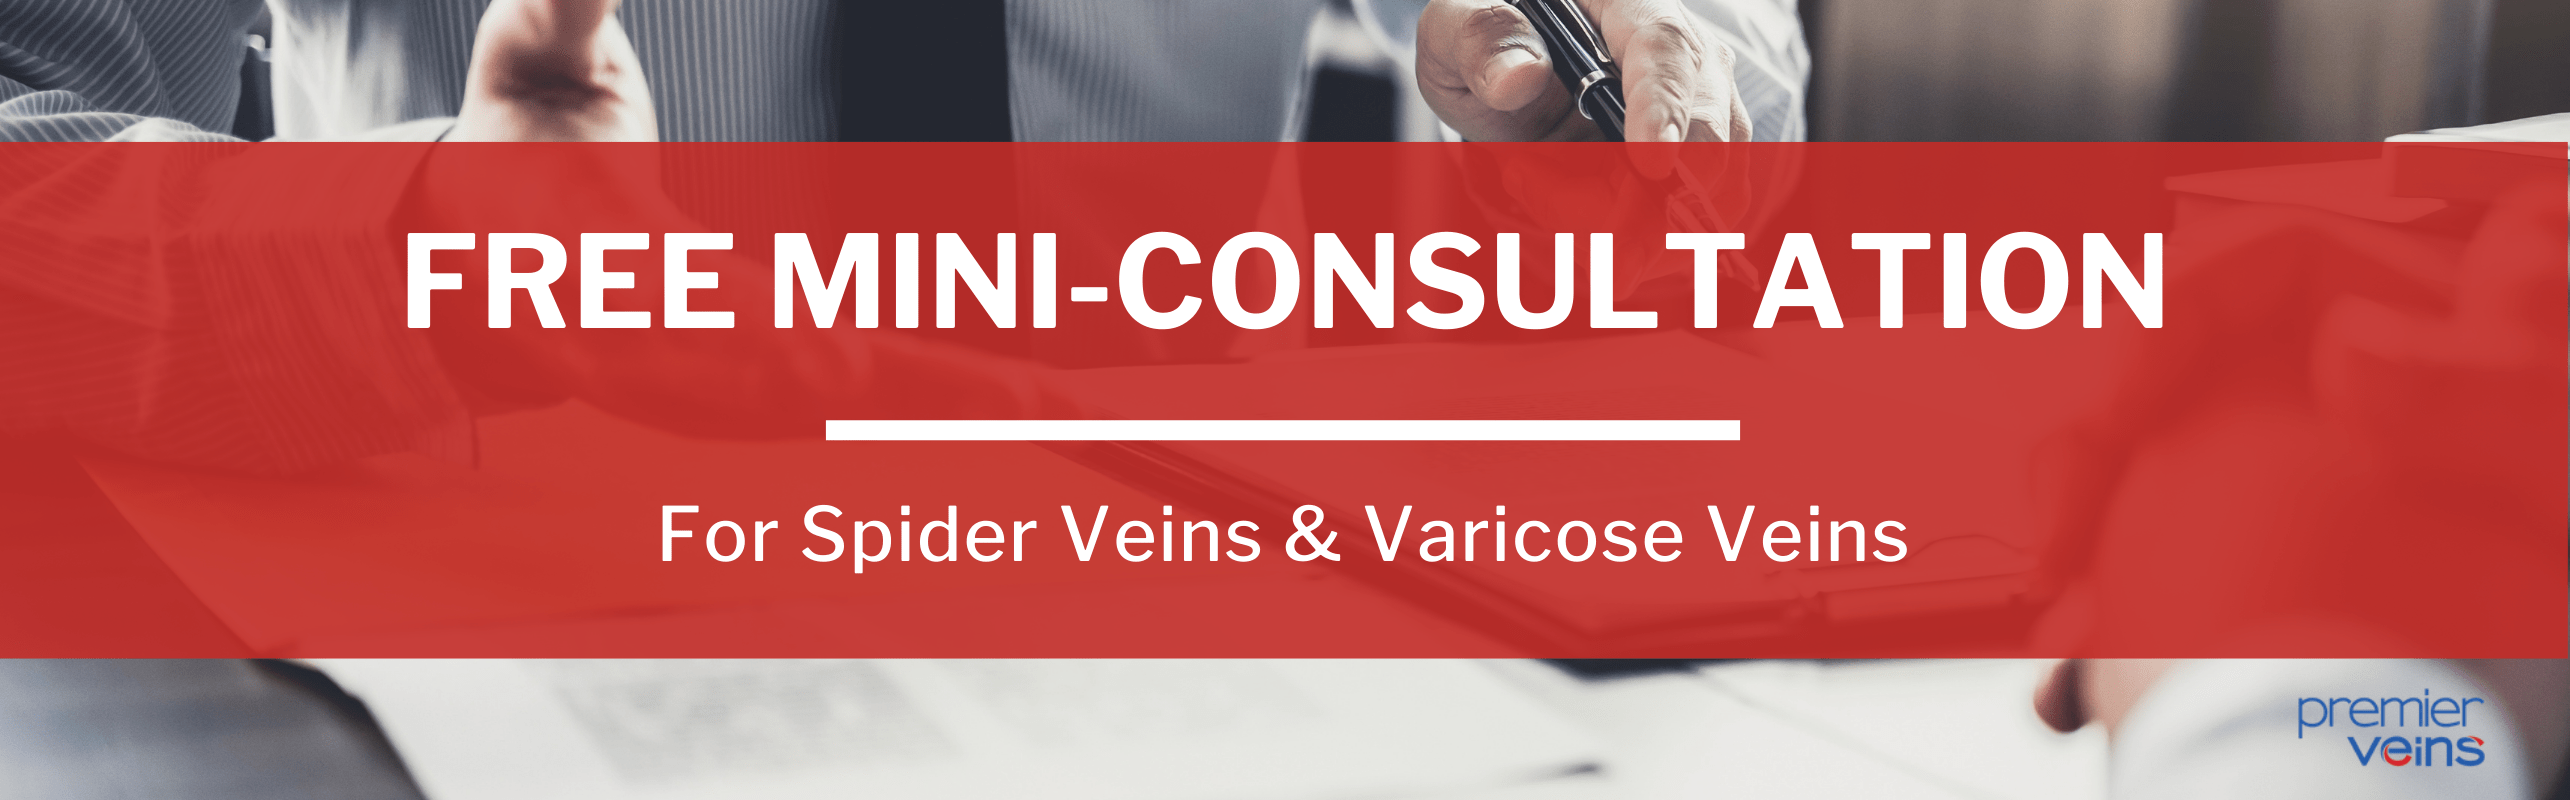 Spider Veins and Varicose Veins Free Mini-Consultation